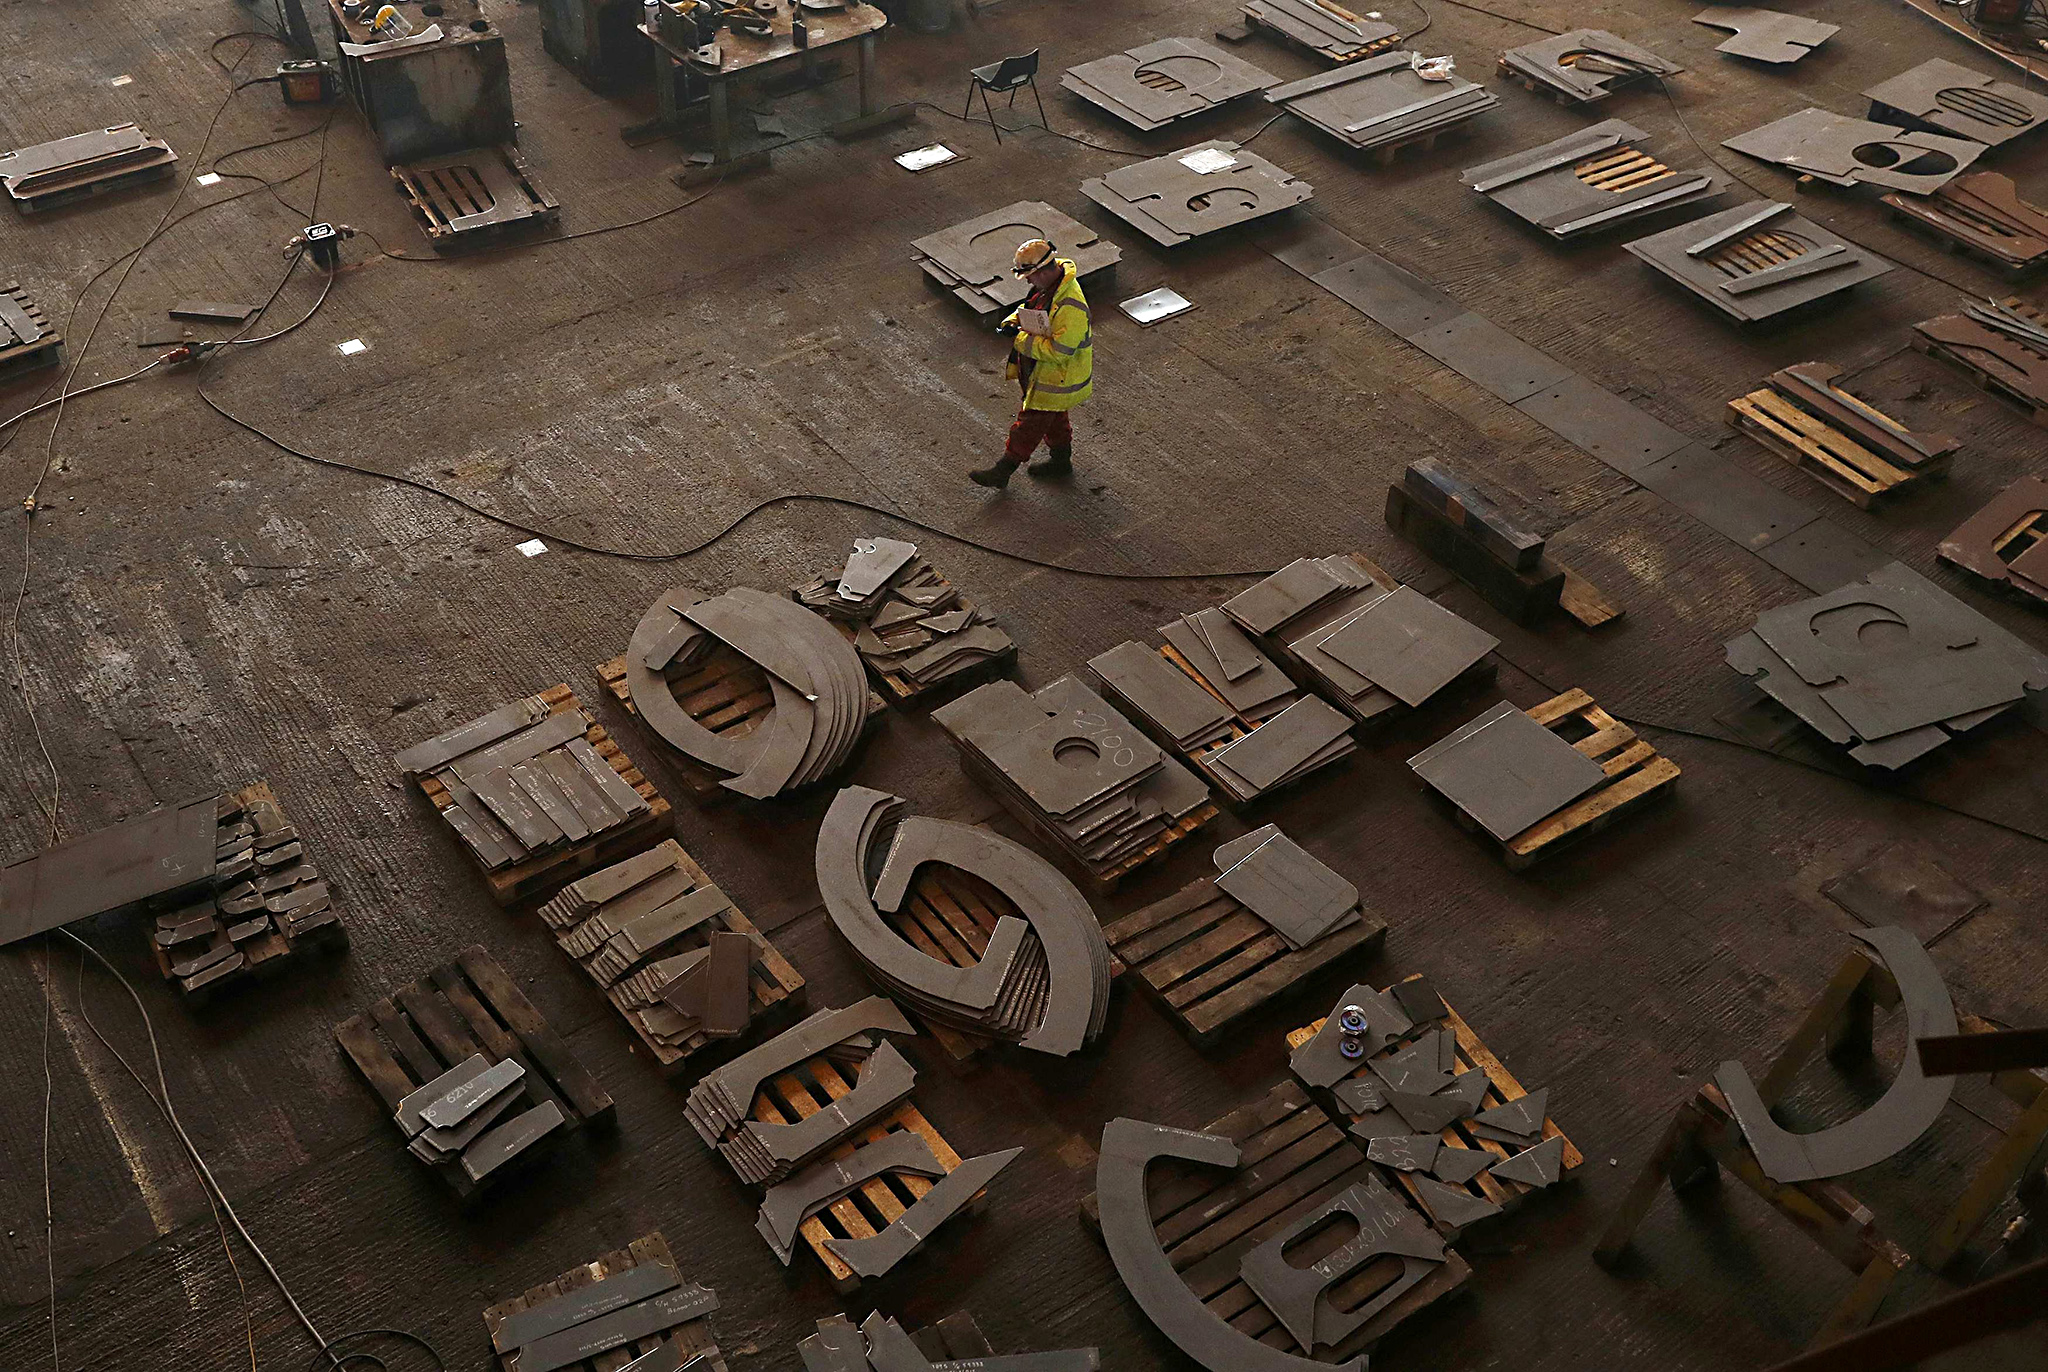 A shipyard worker walks across the construction hall after attending the keel laying ceremony of the new polar research vessel the Sir David Attenborough, at the Cammell Laird ship yard in Birkenhead, northern England October 17 , 2016. REUTERS/Phil Noble